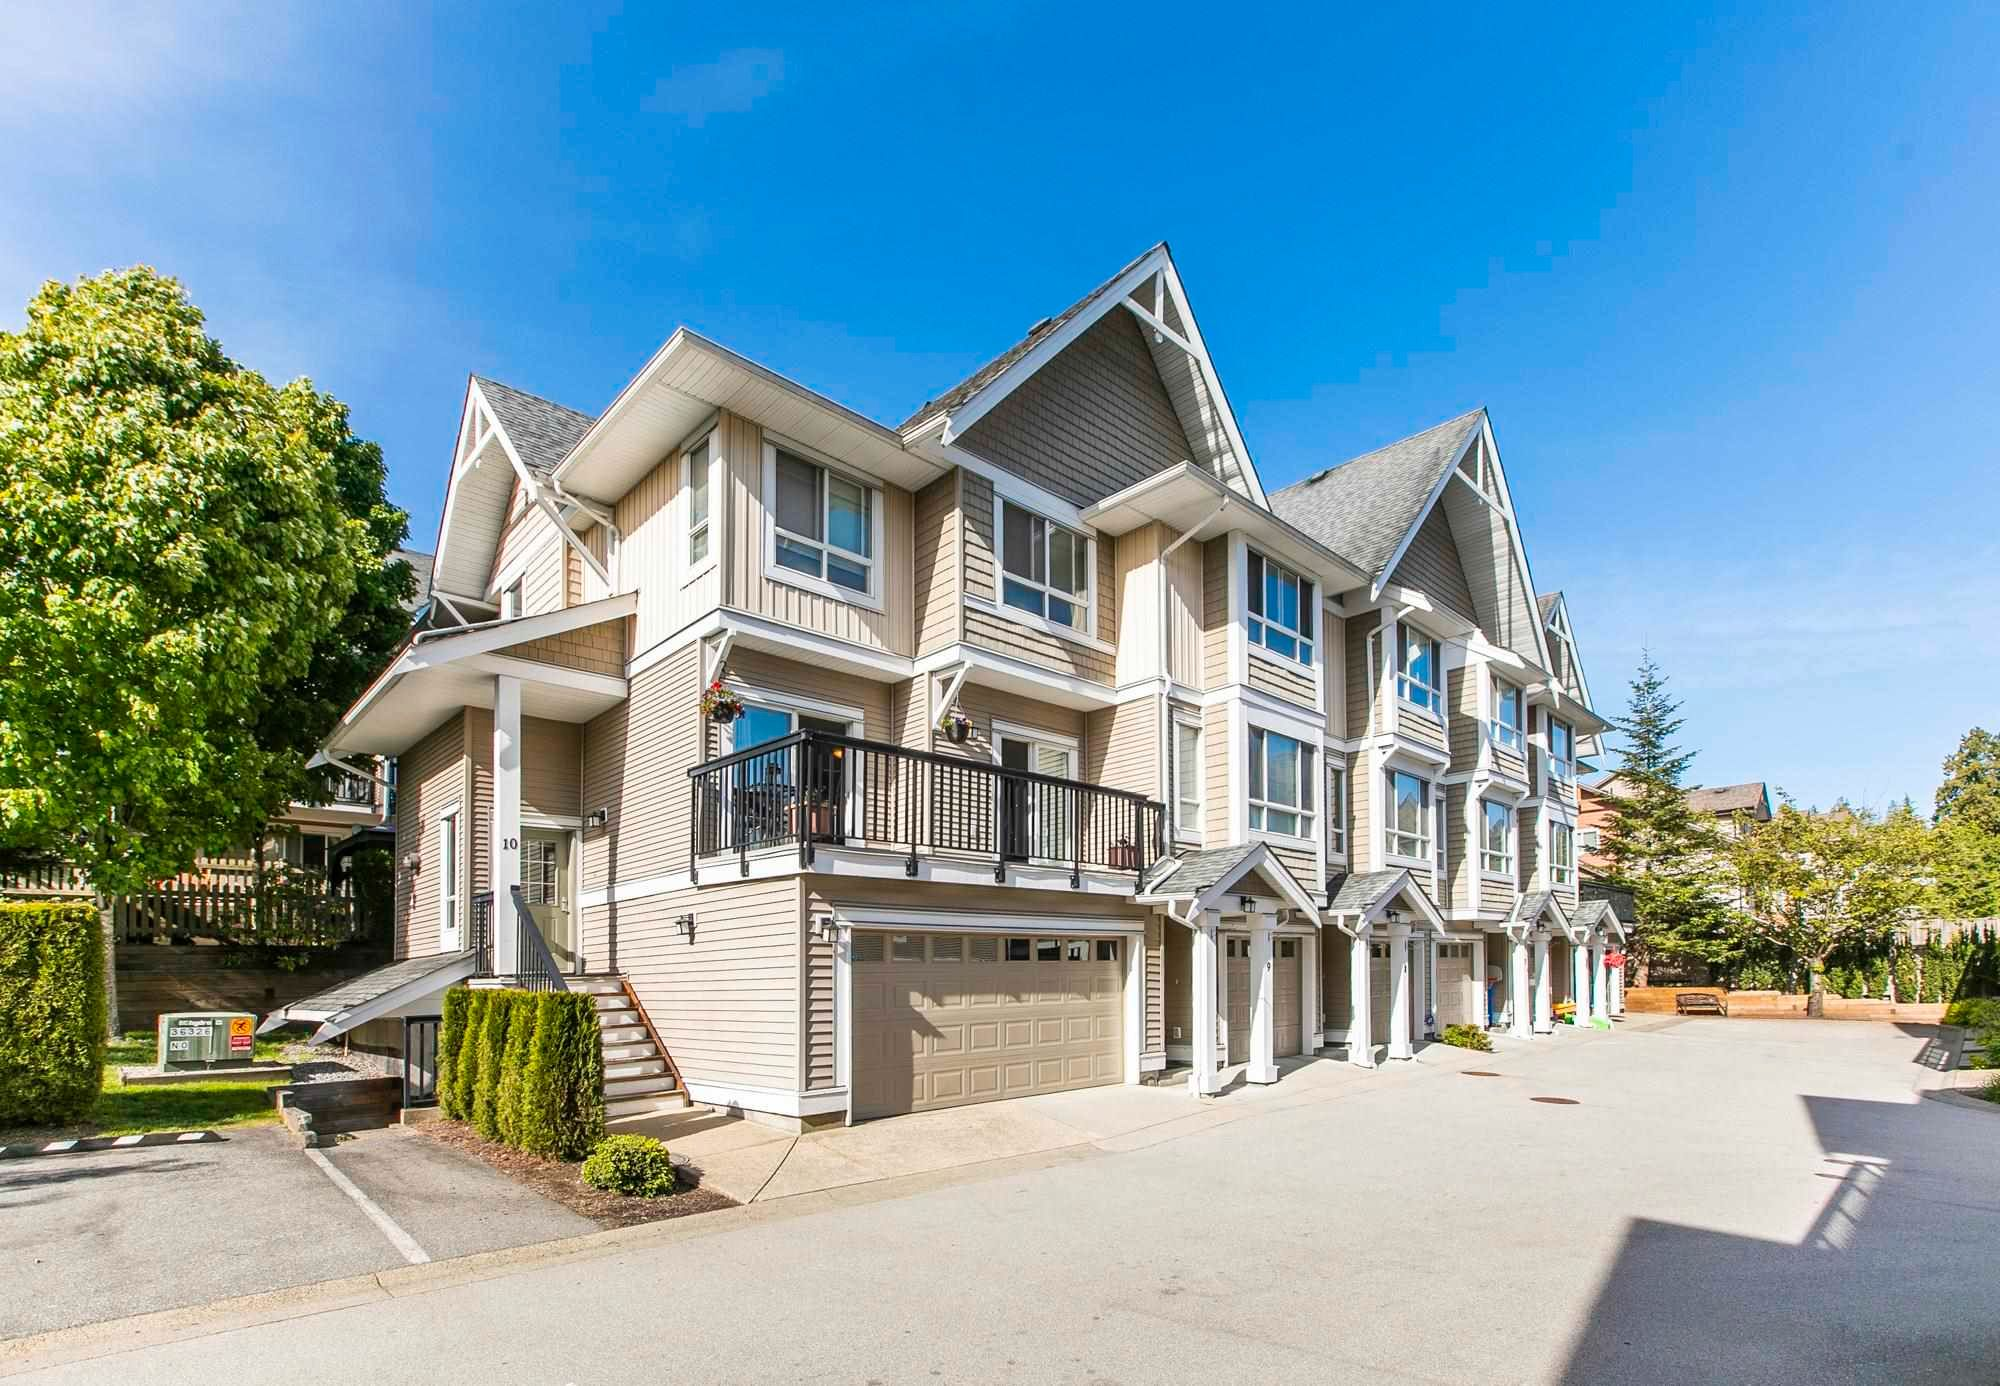 """Main Photo: 10 20159 68 Avenue in Langley: Willoughby Heights Townhouse for sale in """"Vantage"""" : MLS®# R2599623"""